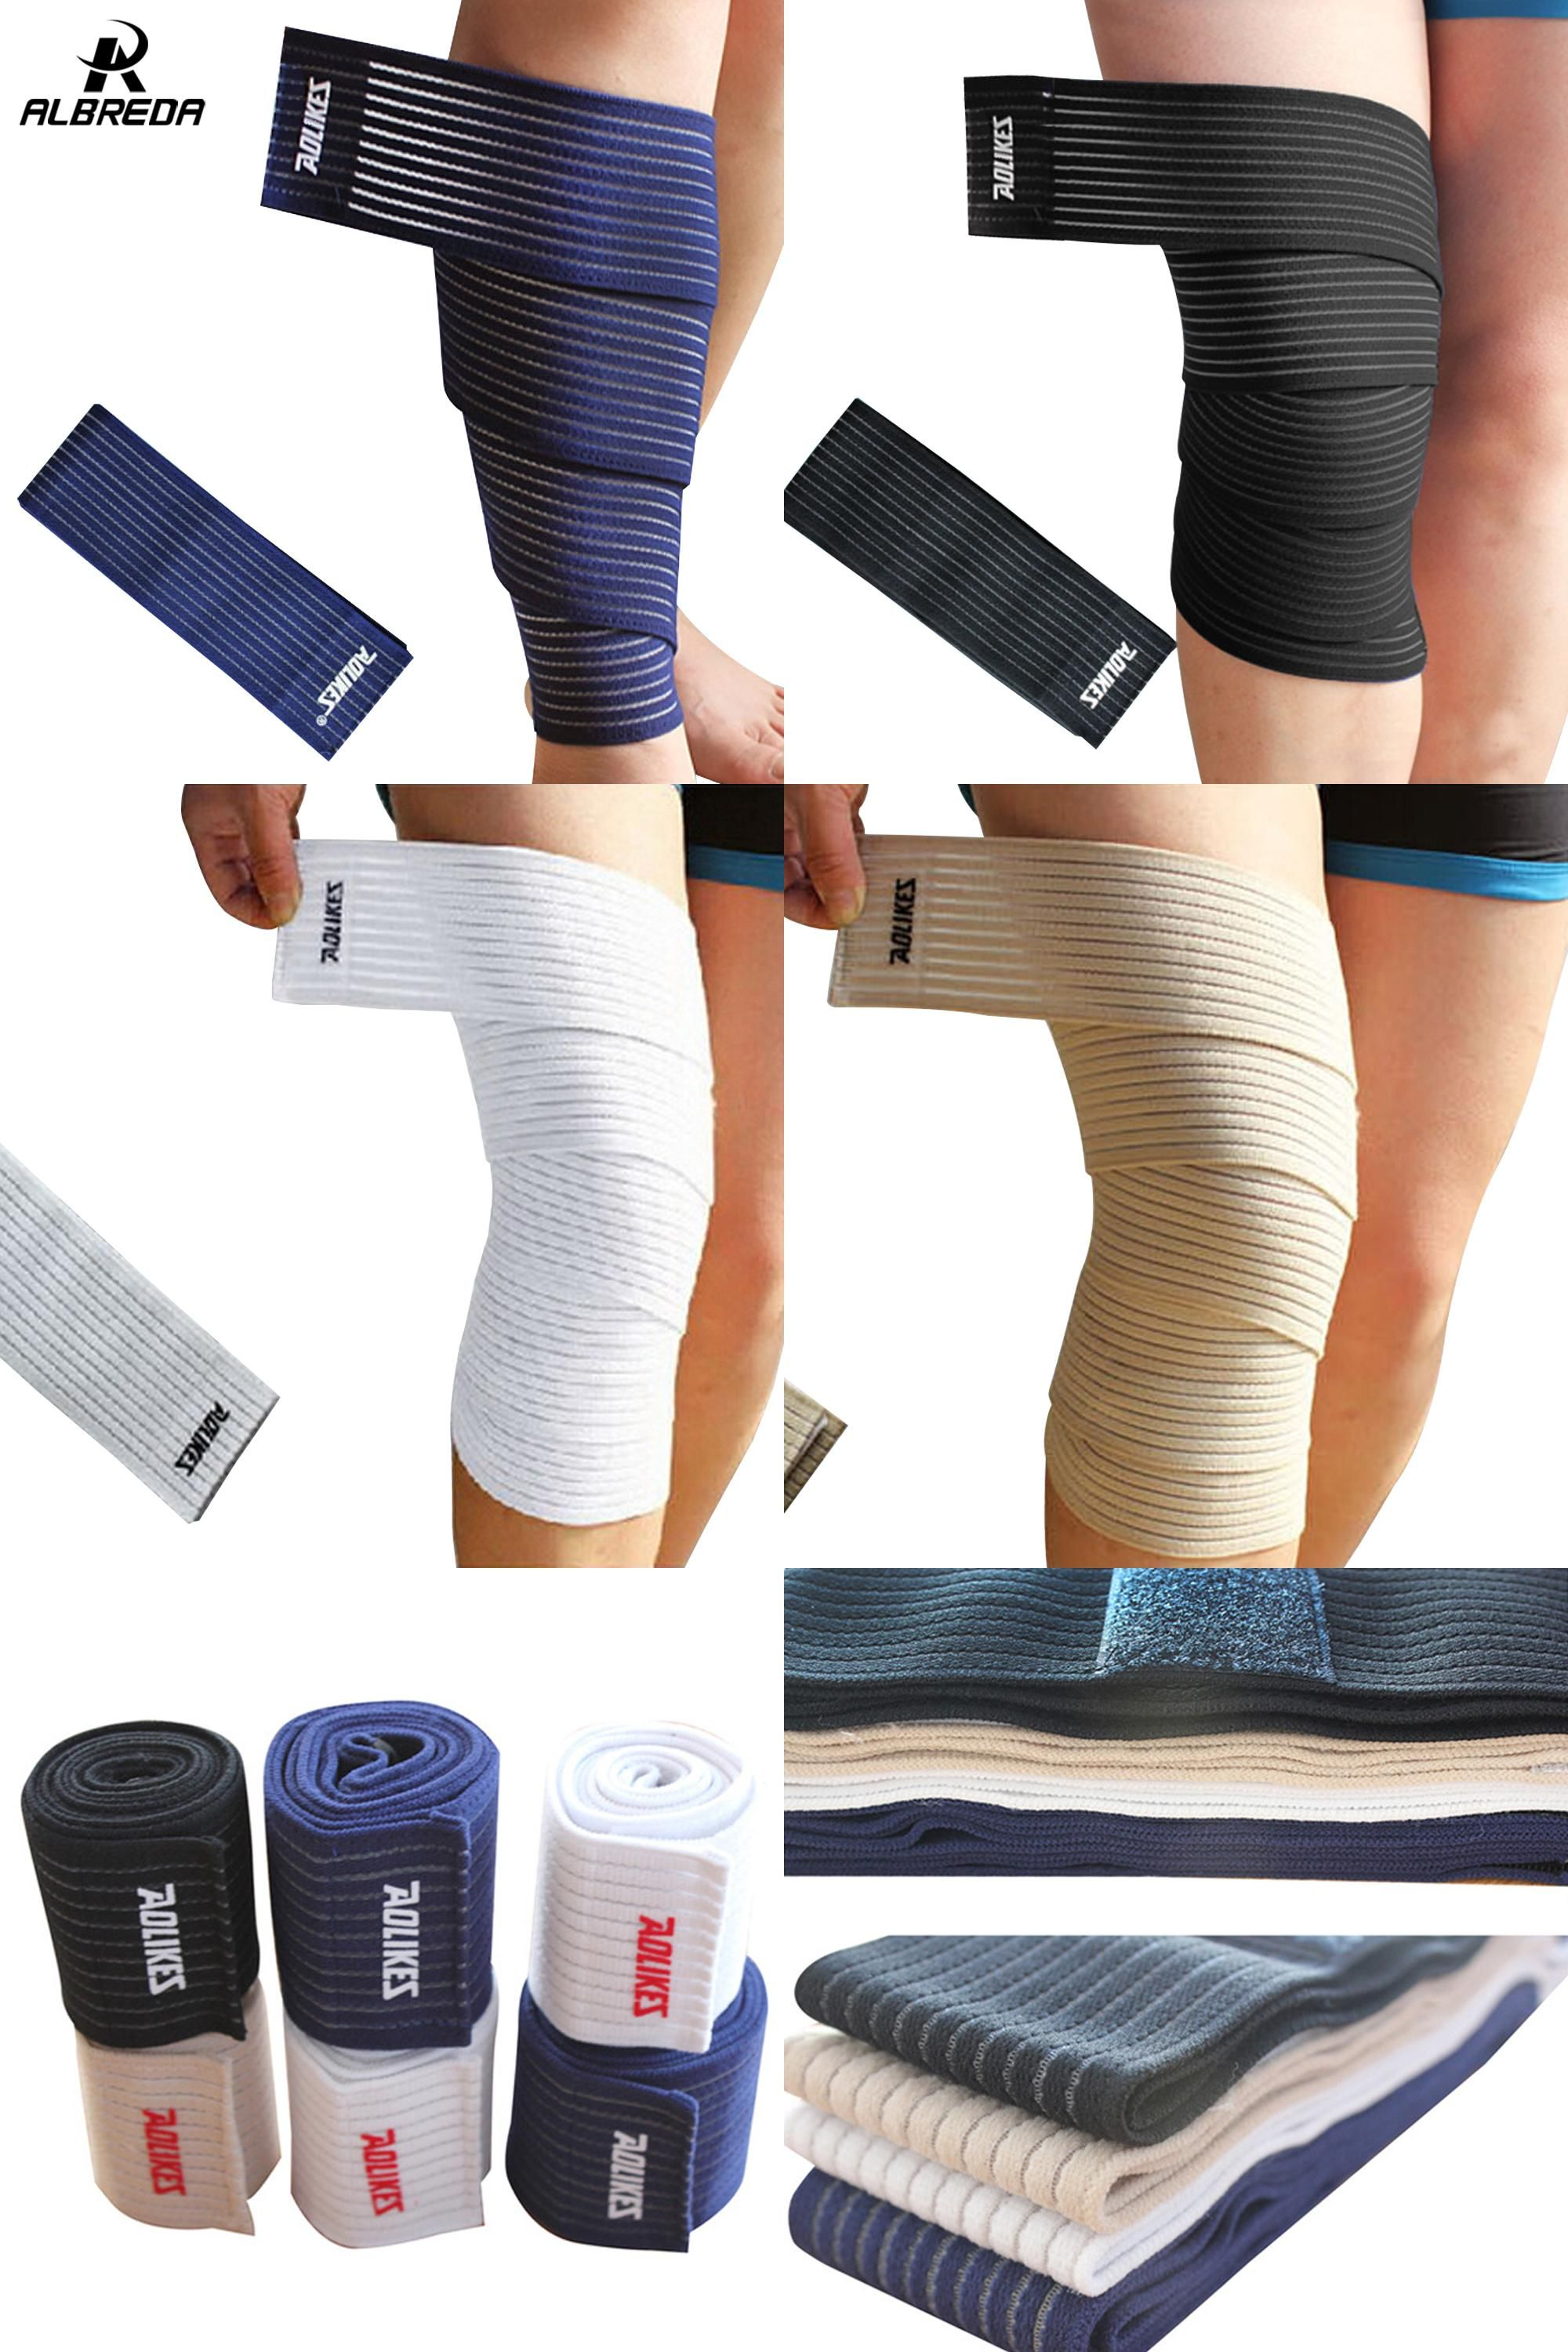 Support Protective Gear New Elastic Bandage Therapy Sport Brace